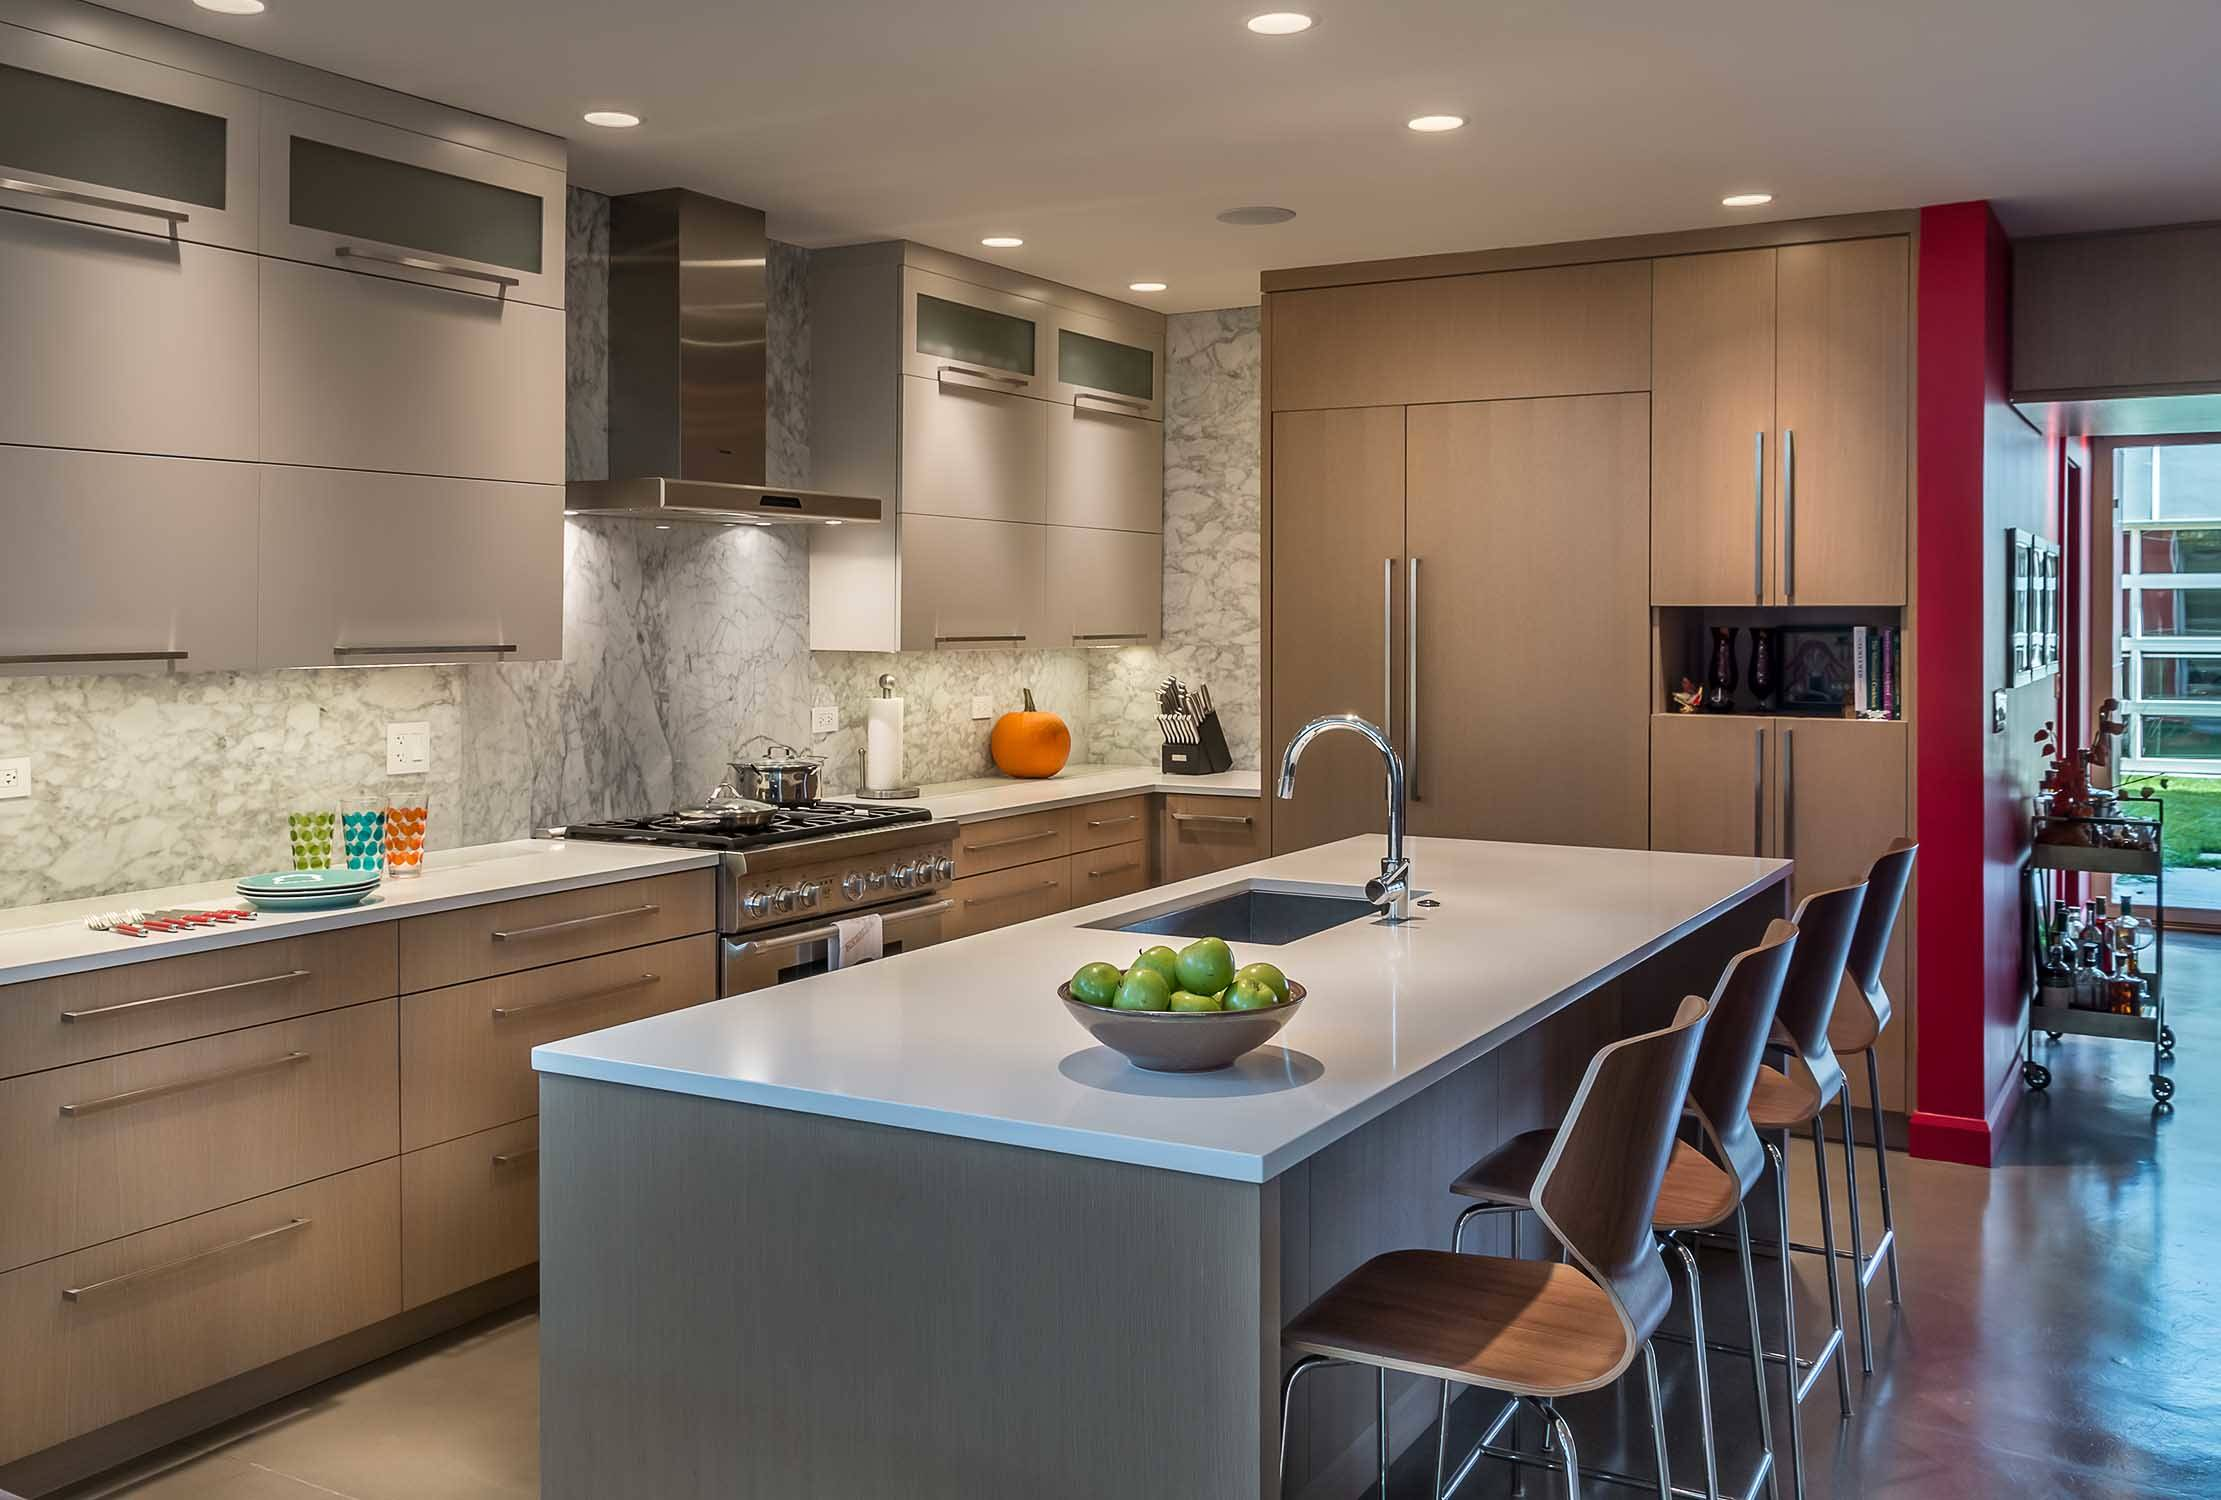 75 Beautiful Kitchen With Recycled Glass Countertops Pictures Ideas December 2020 Houzz